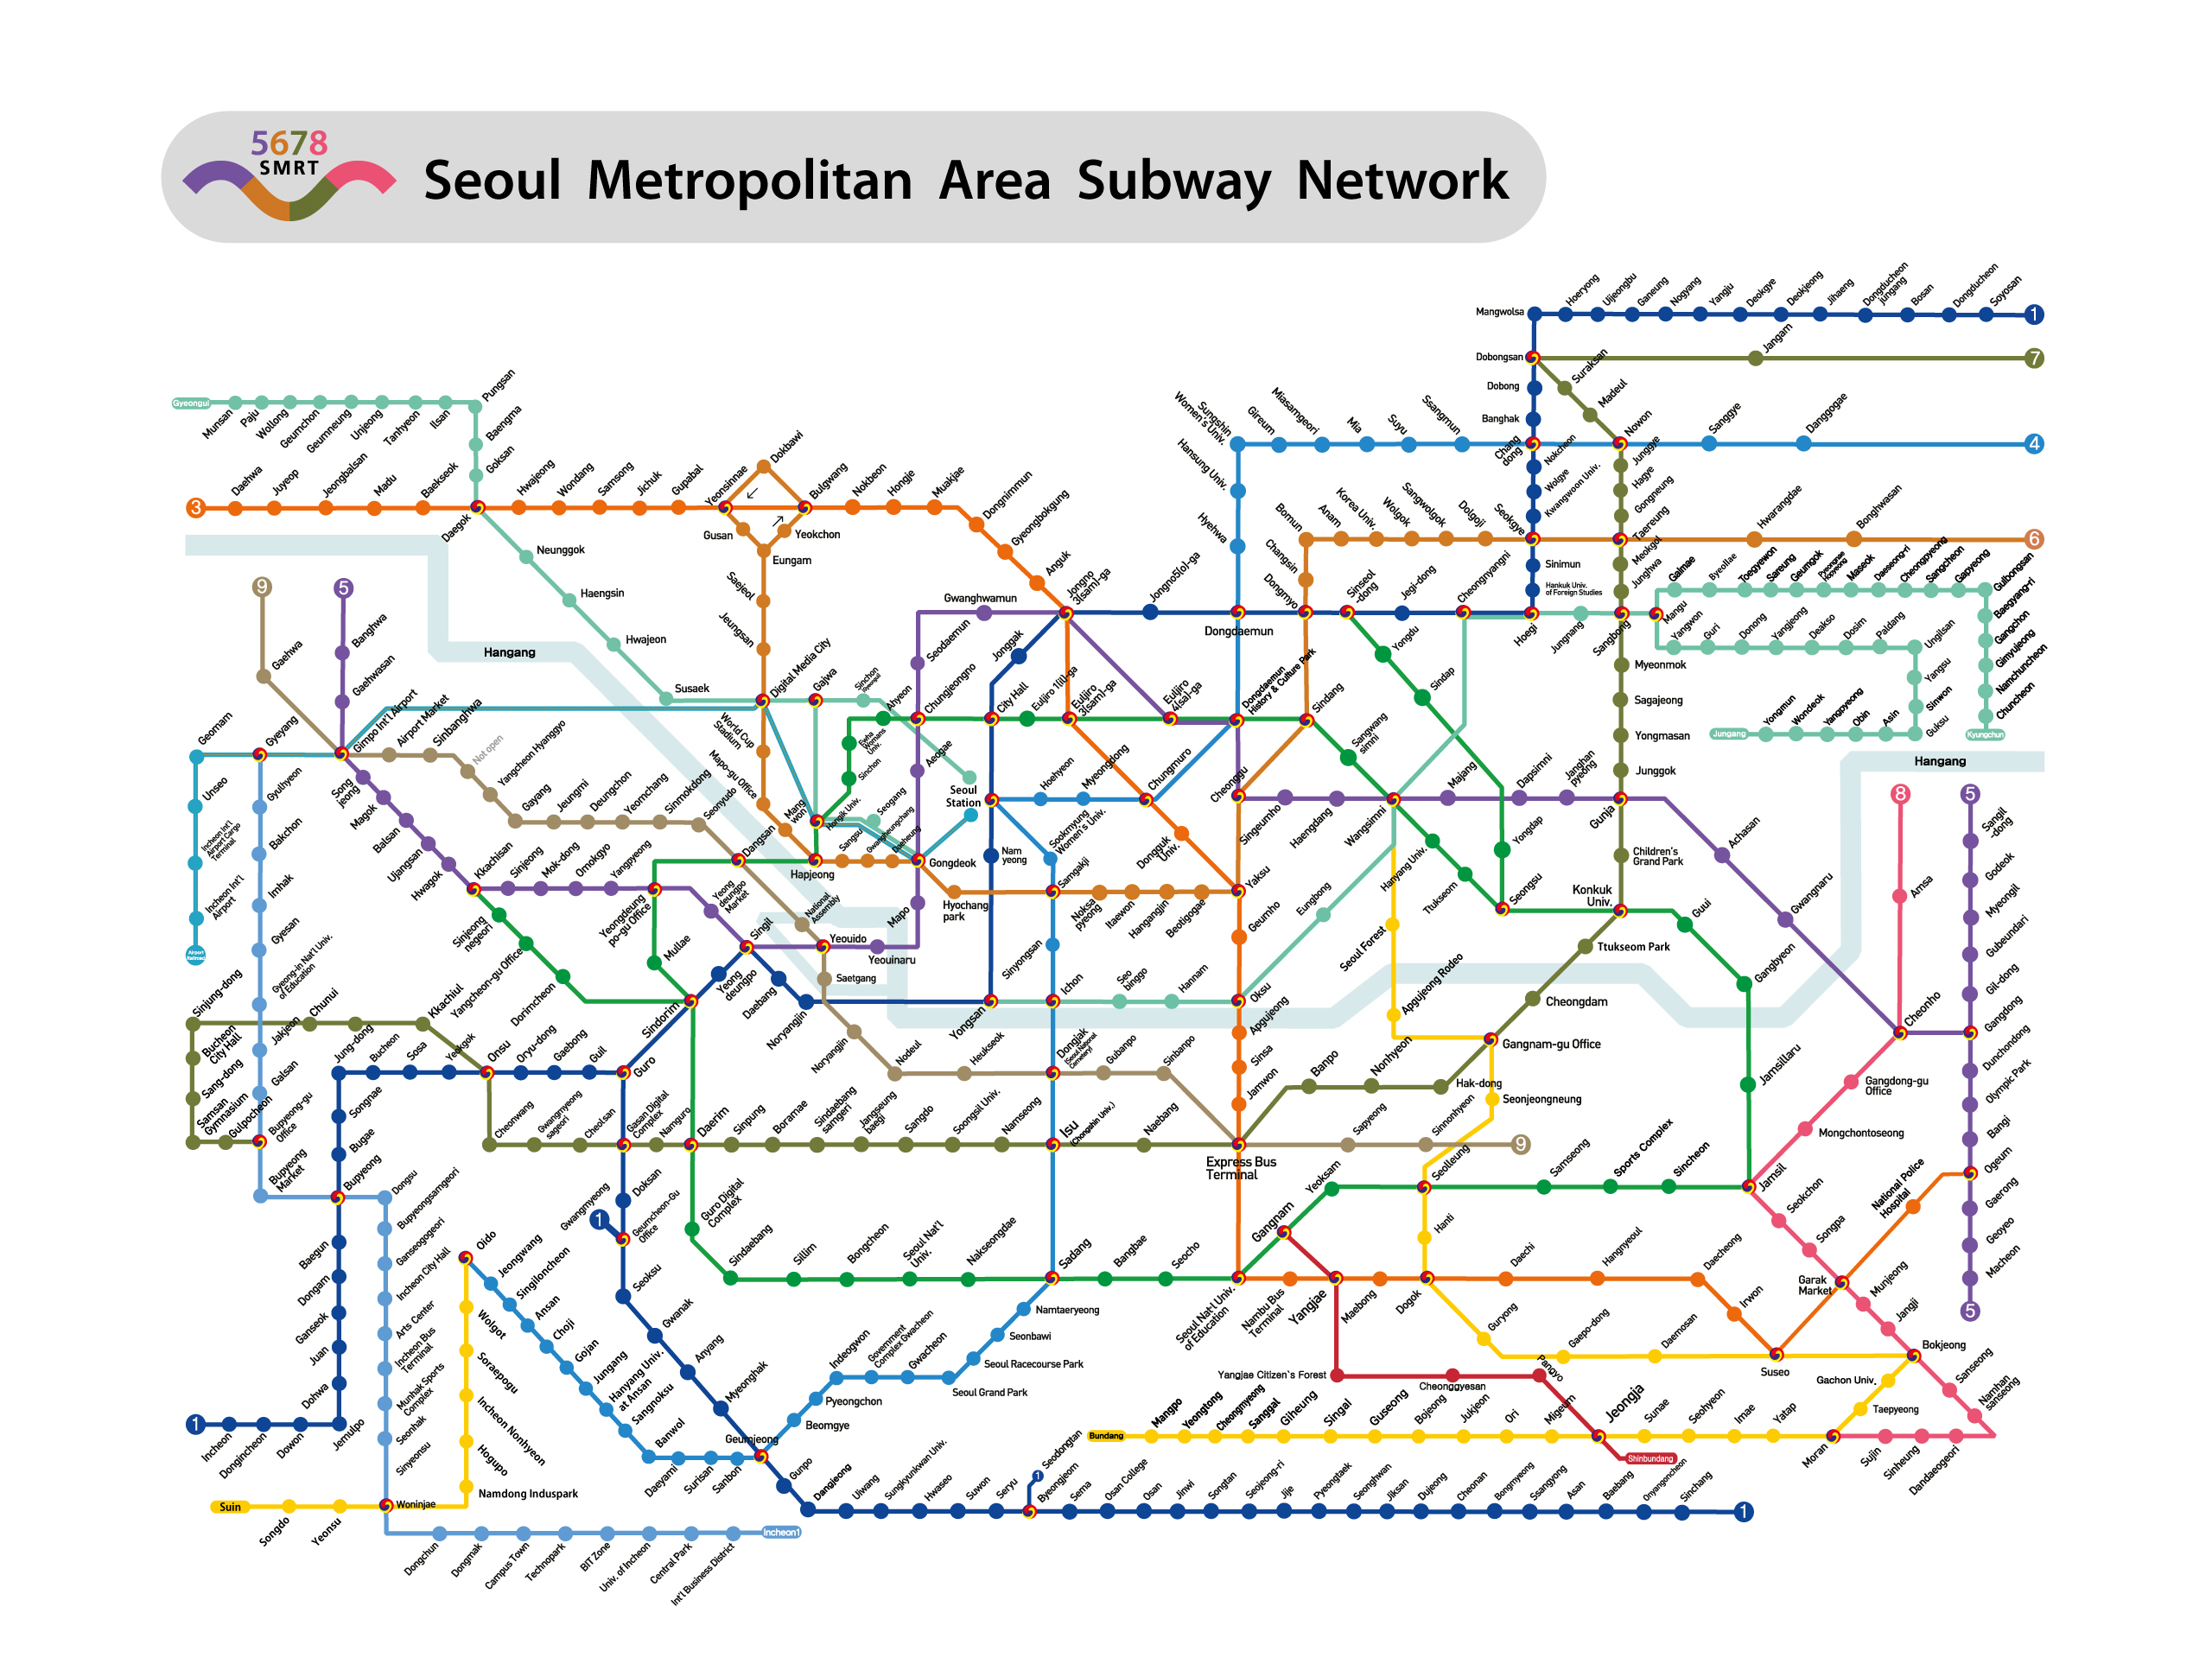 Seoul Subway Map Chinese.Seoul Subway Guide Seoul Jeju Everland Lotteworld Trip To Korea